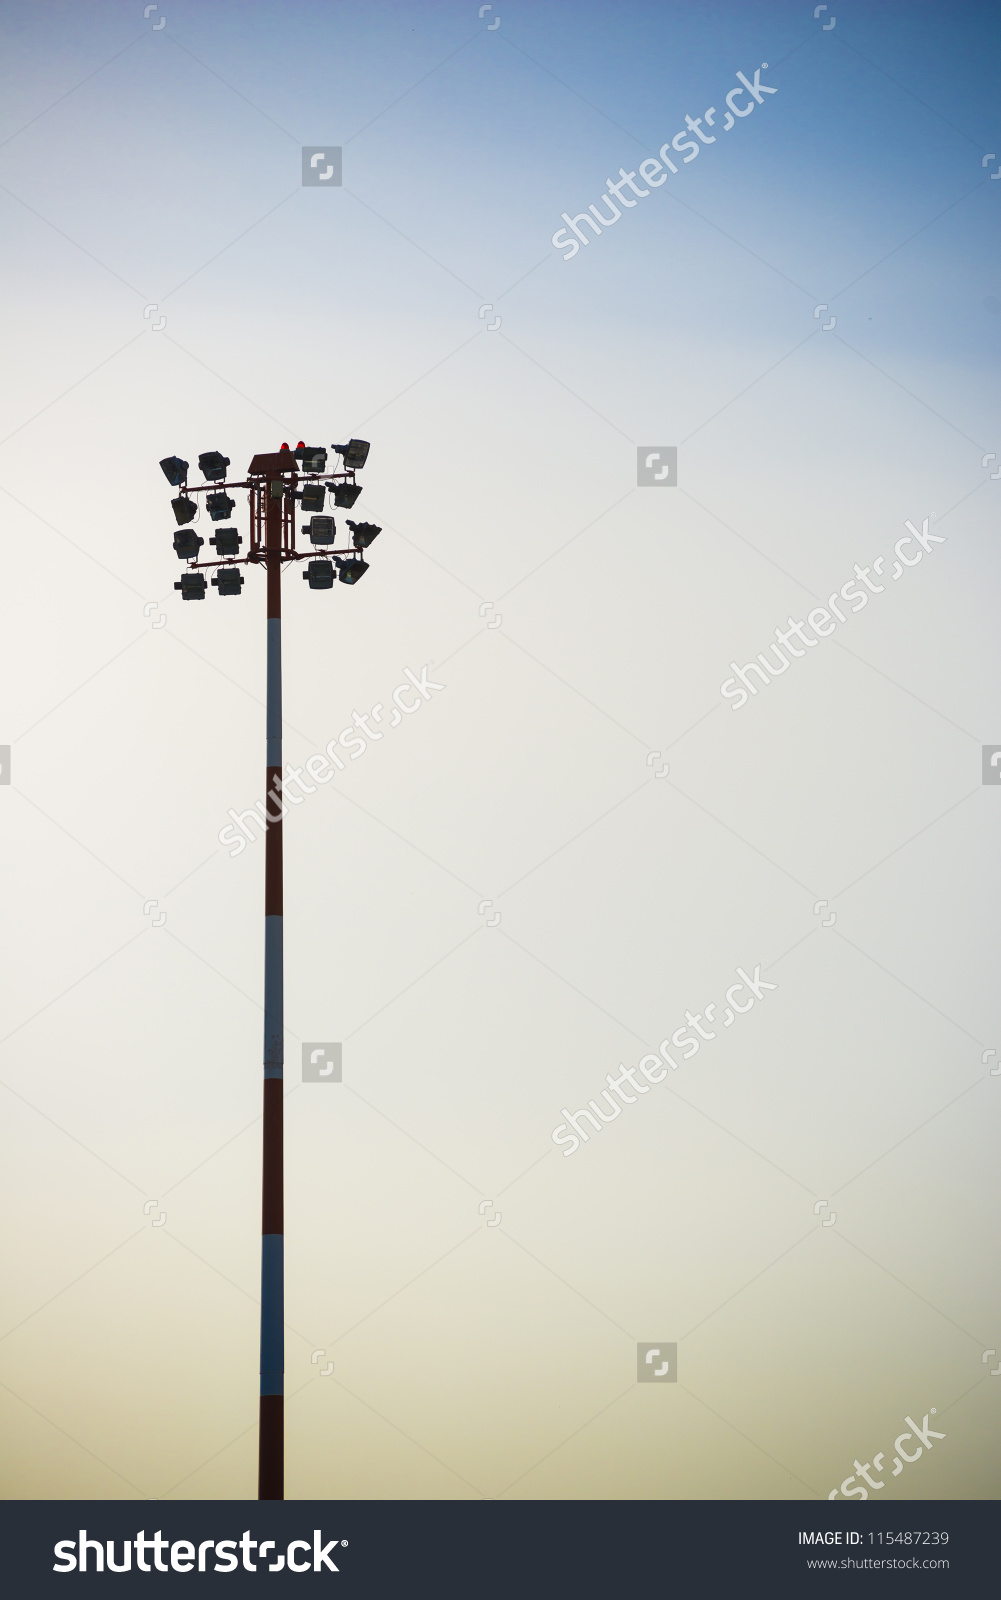 A Silhouette Of A Flood Light In The Morning Light. Stock Photo.